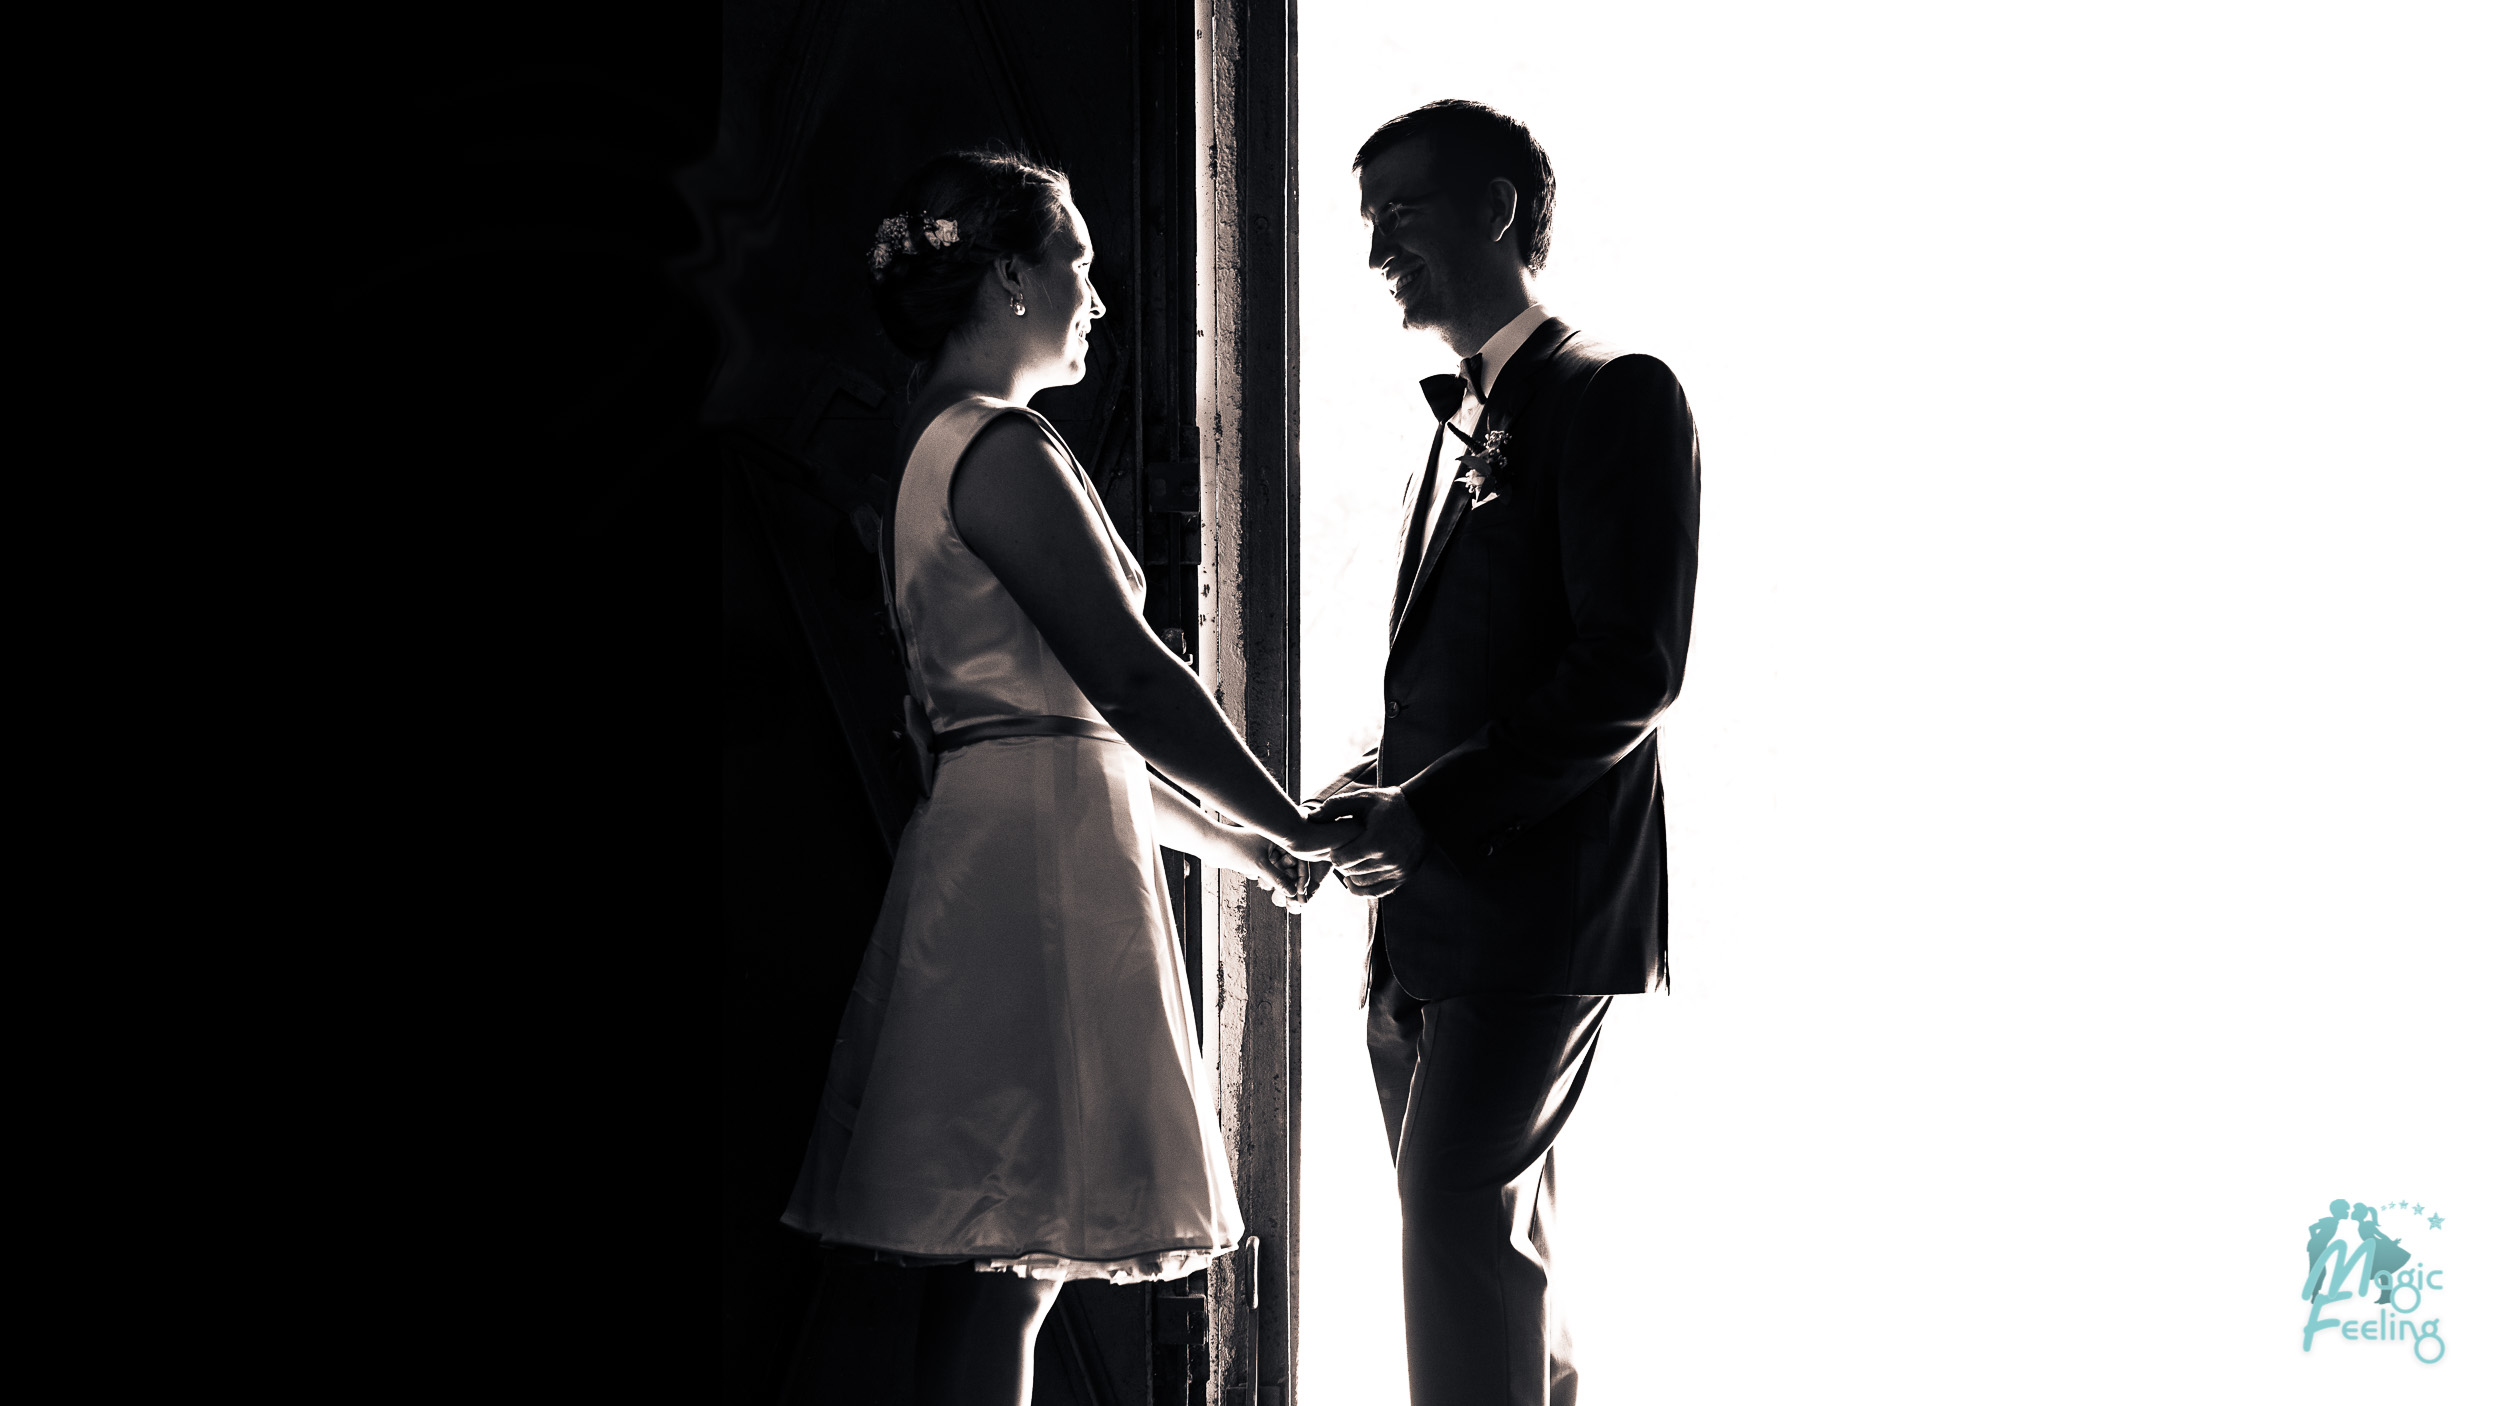 Magic Feeling - Hochzeit Black and White